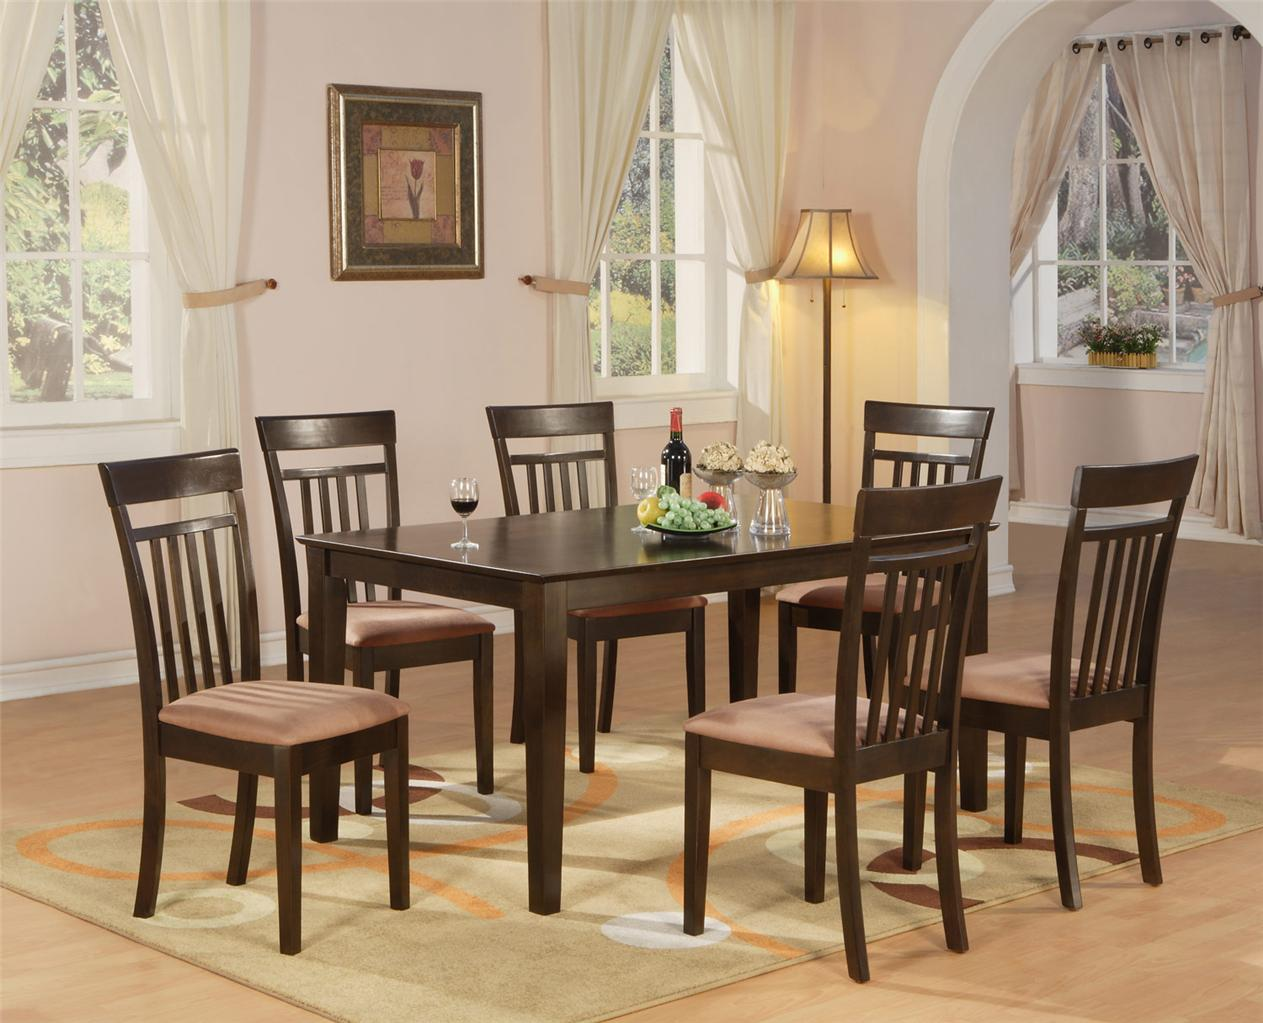 7 pc dining room dinette kitchen set table and 6 chairs ebay for Kitchen dining sets